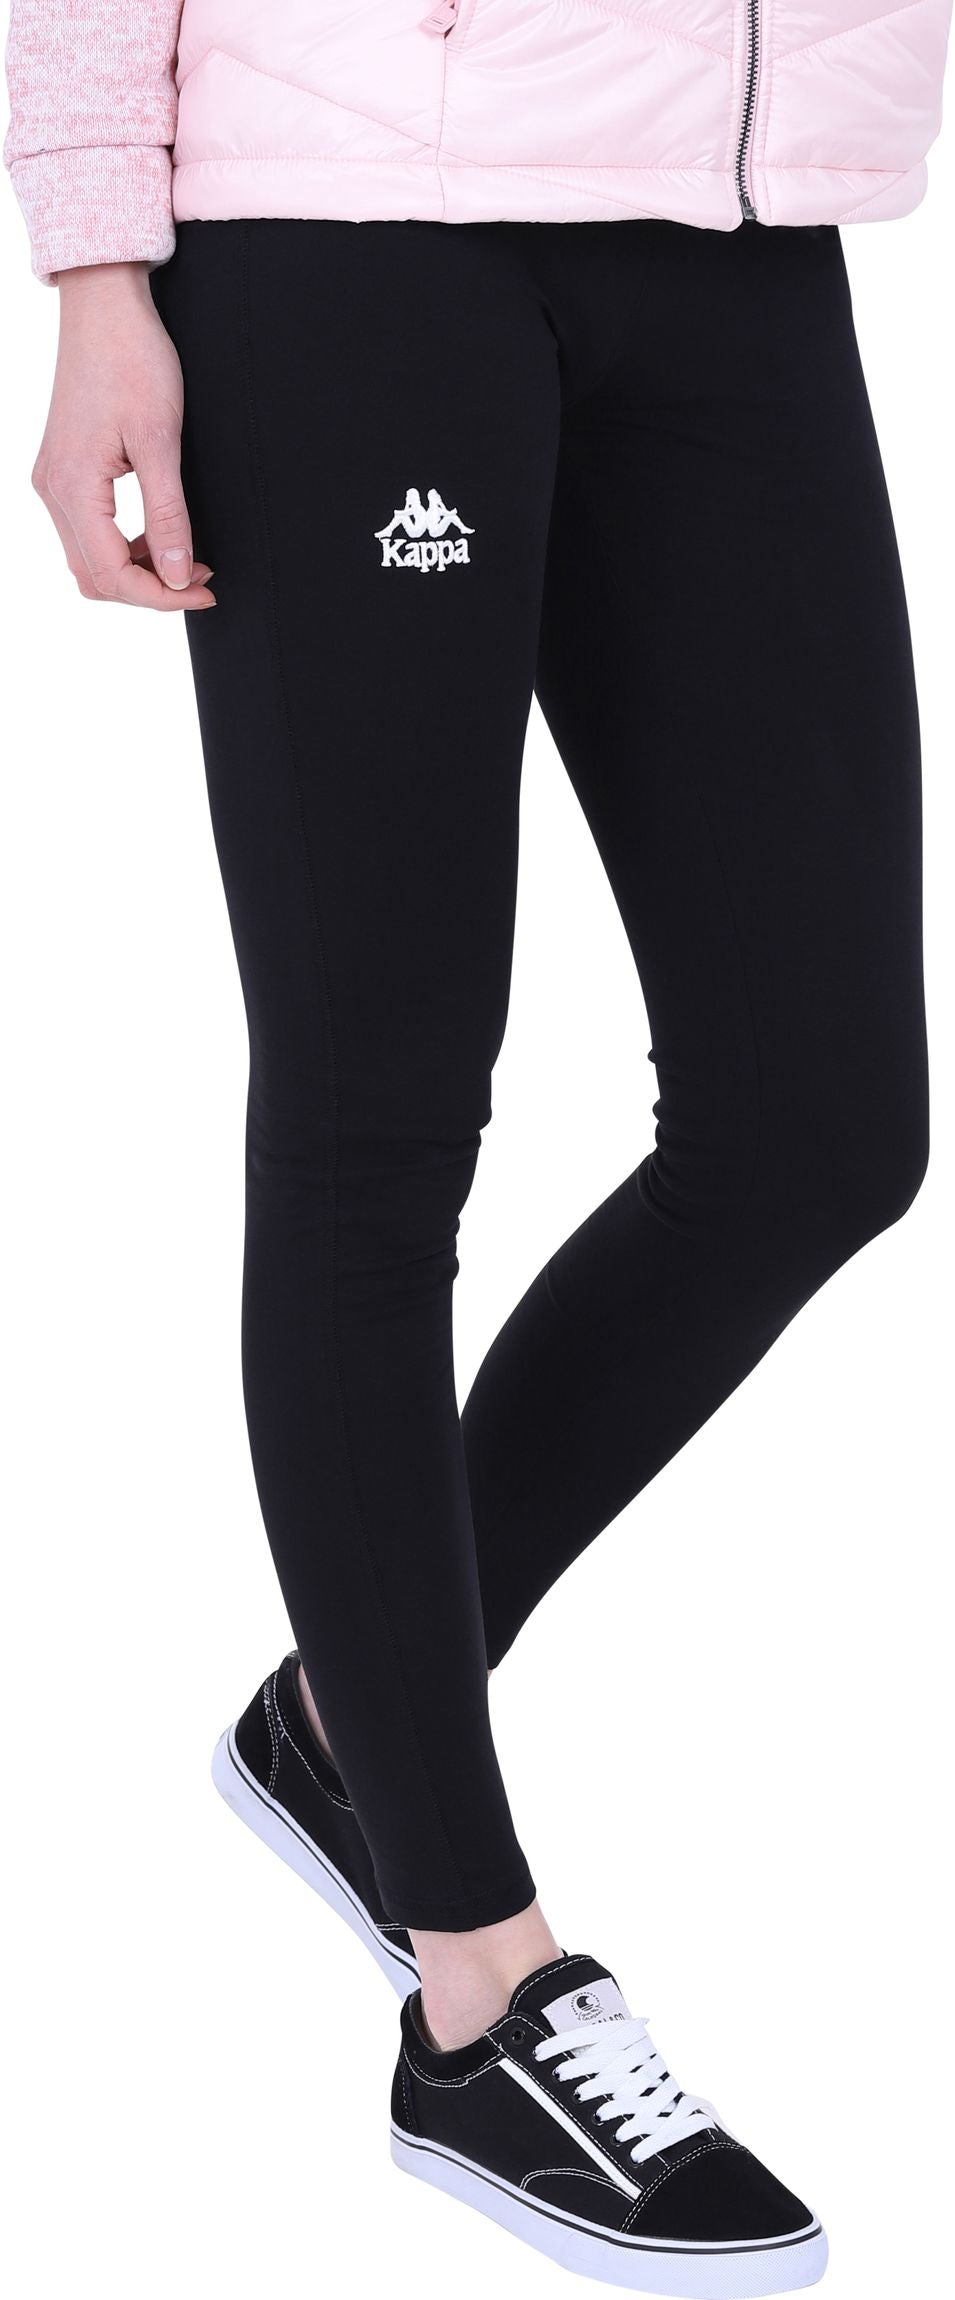 Kappa Zimut Leggings Black